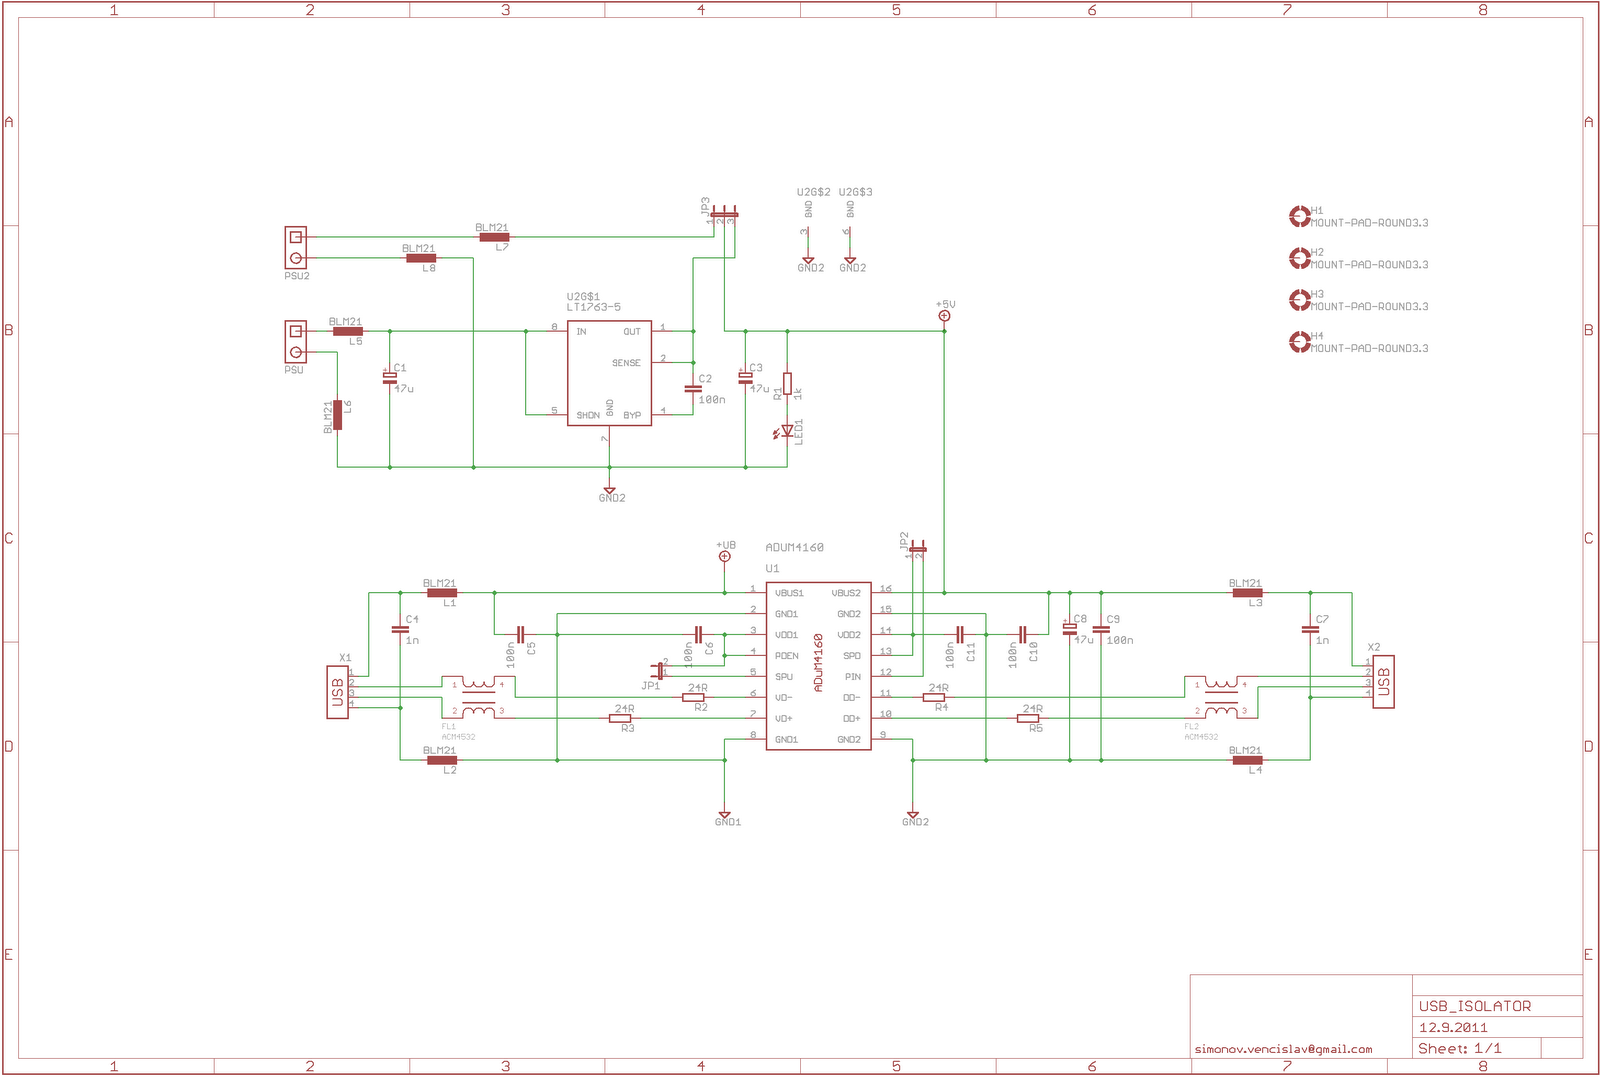 usb wiring diagram pdf with Diy Usb Isolator Made Easy on ConnectorAndWiringLoom together with Cat 5 Wiring Diagram For Daisy Chain further Diy Usb Isolator Made Easy in addition Micro850 furthermore Arduino Mega 2560 Pin Diagram.